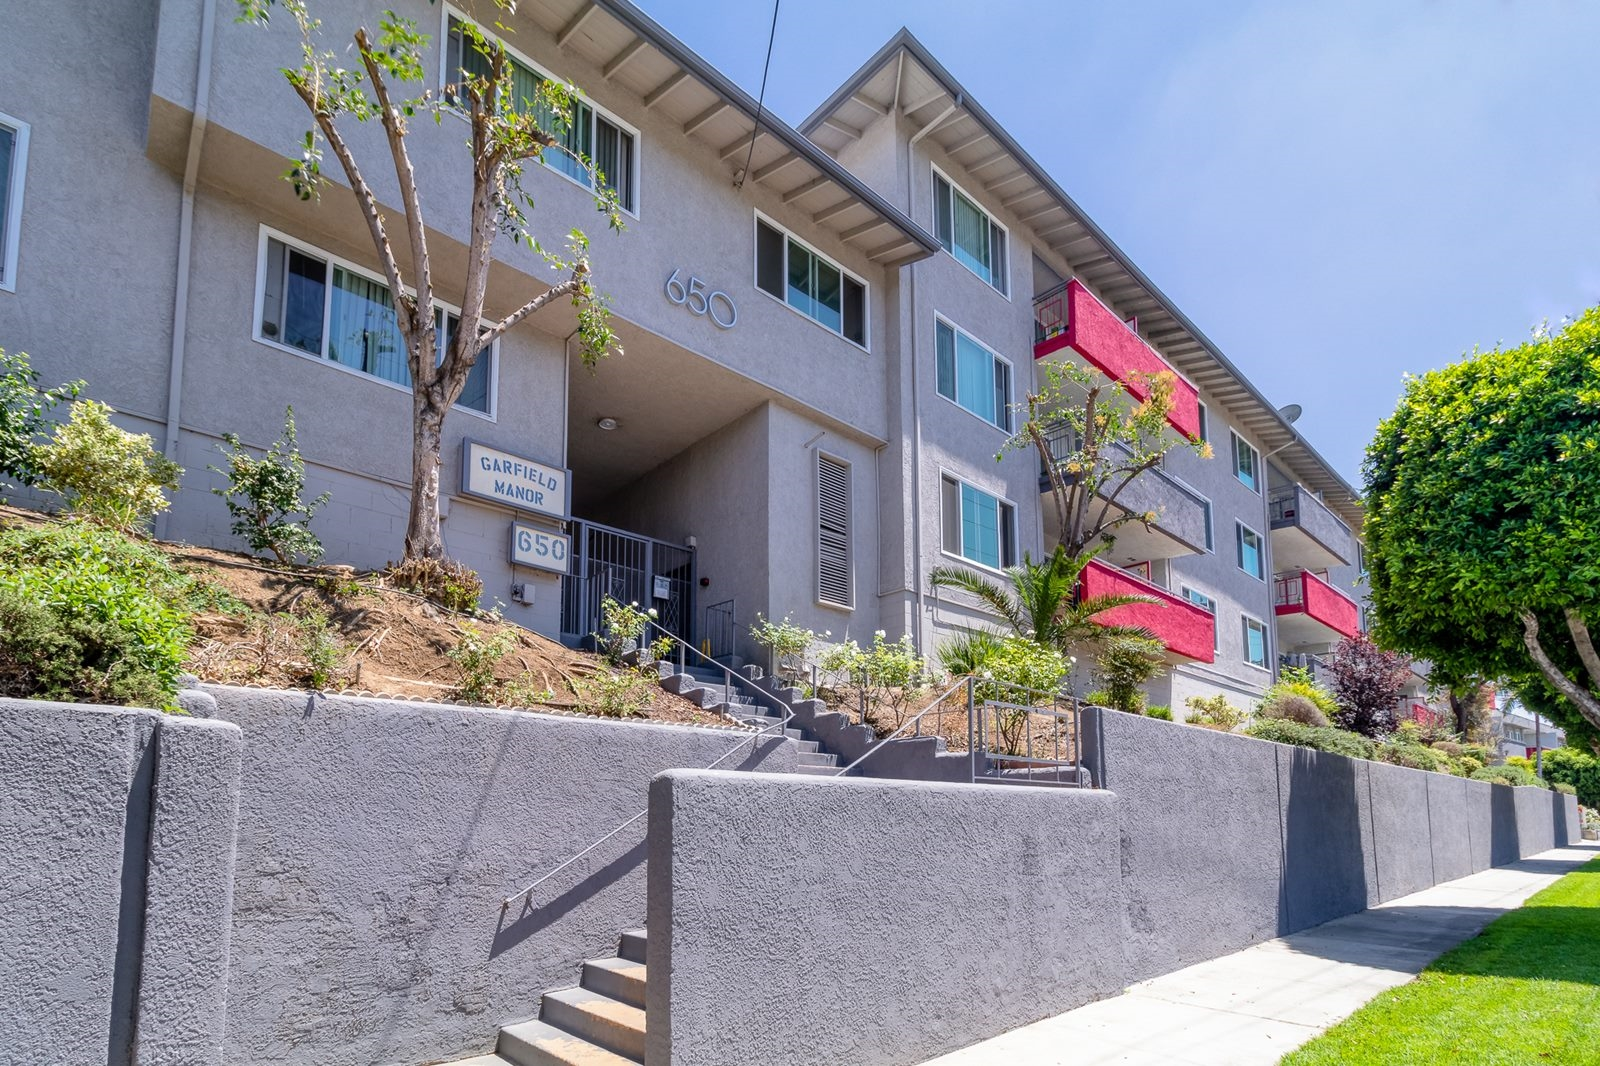 1 bedroom Monterey Park